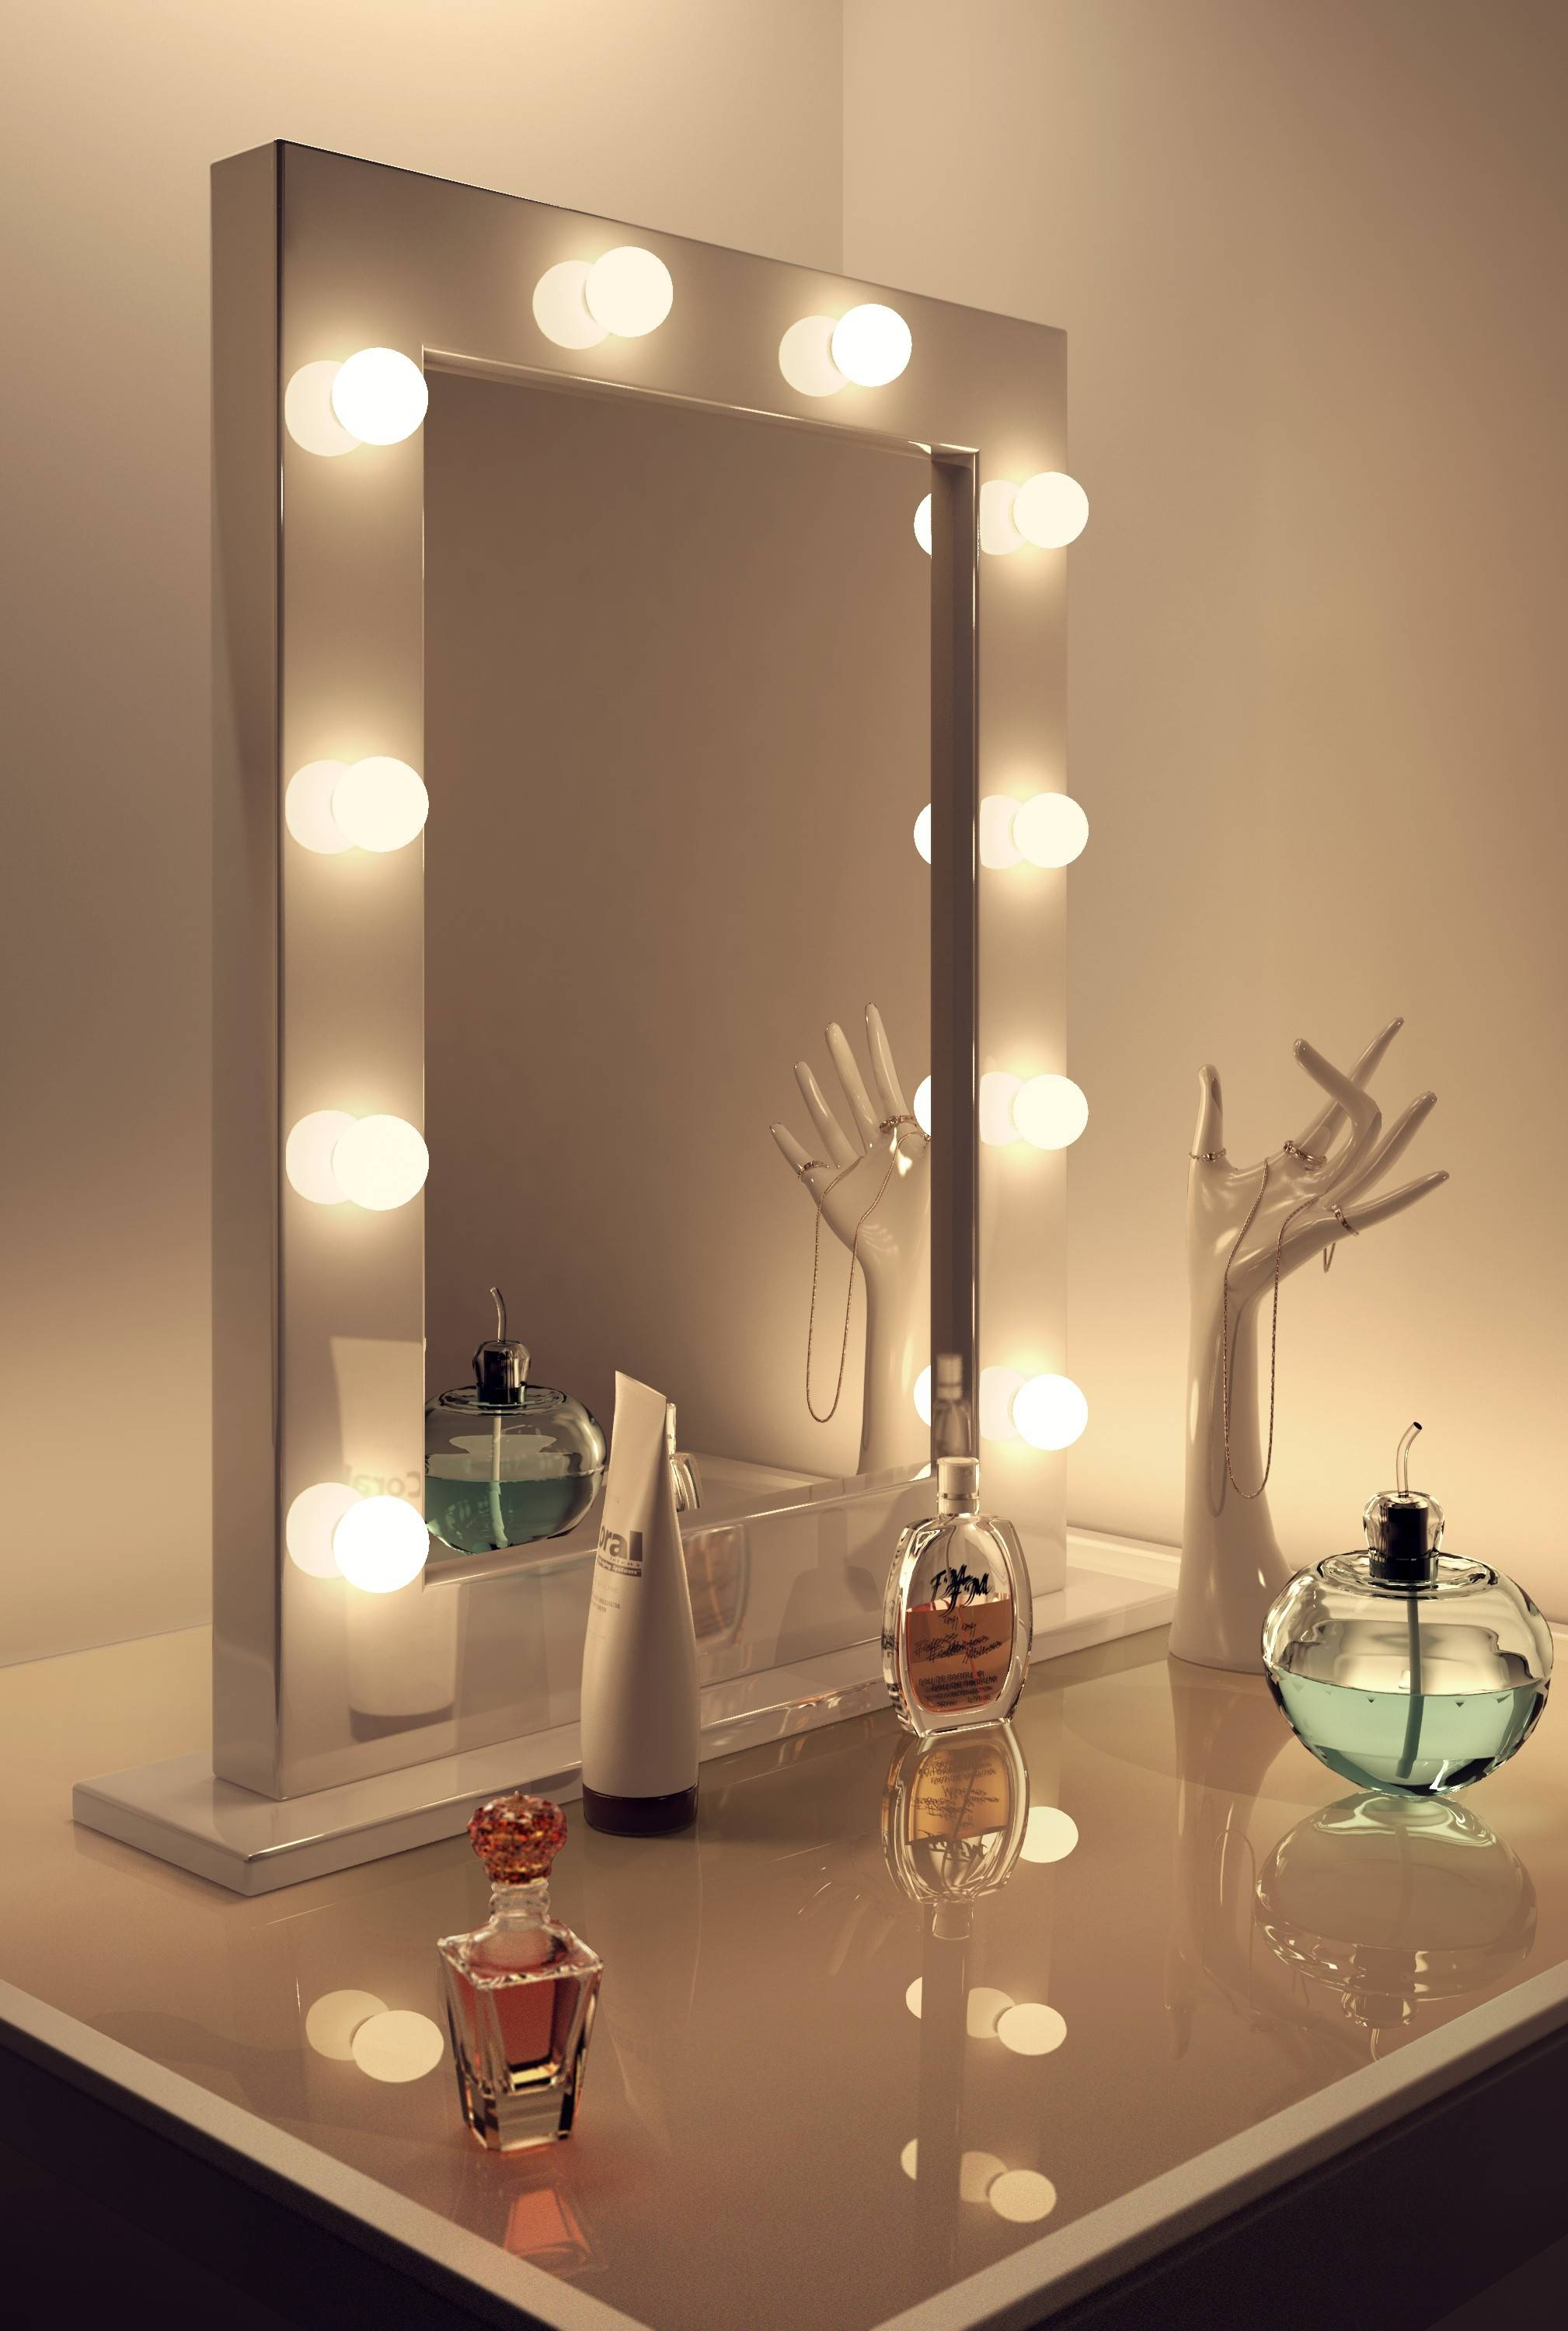 Decorations : Excellent Squre Mirrors With White Light Bulbs And inside Cream Standing Mirrors (Image 10 of 25)